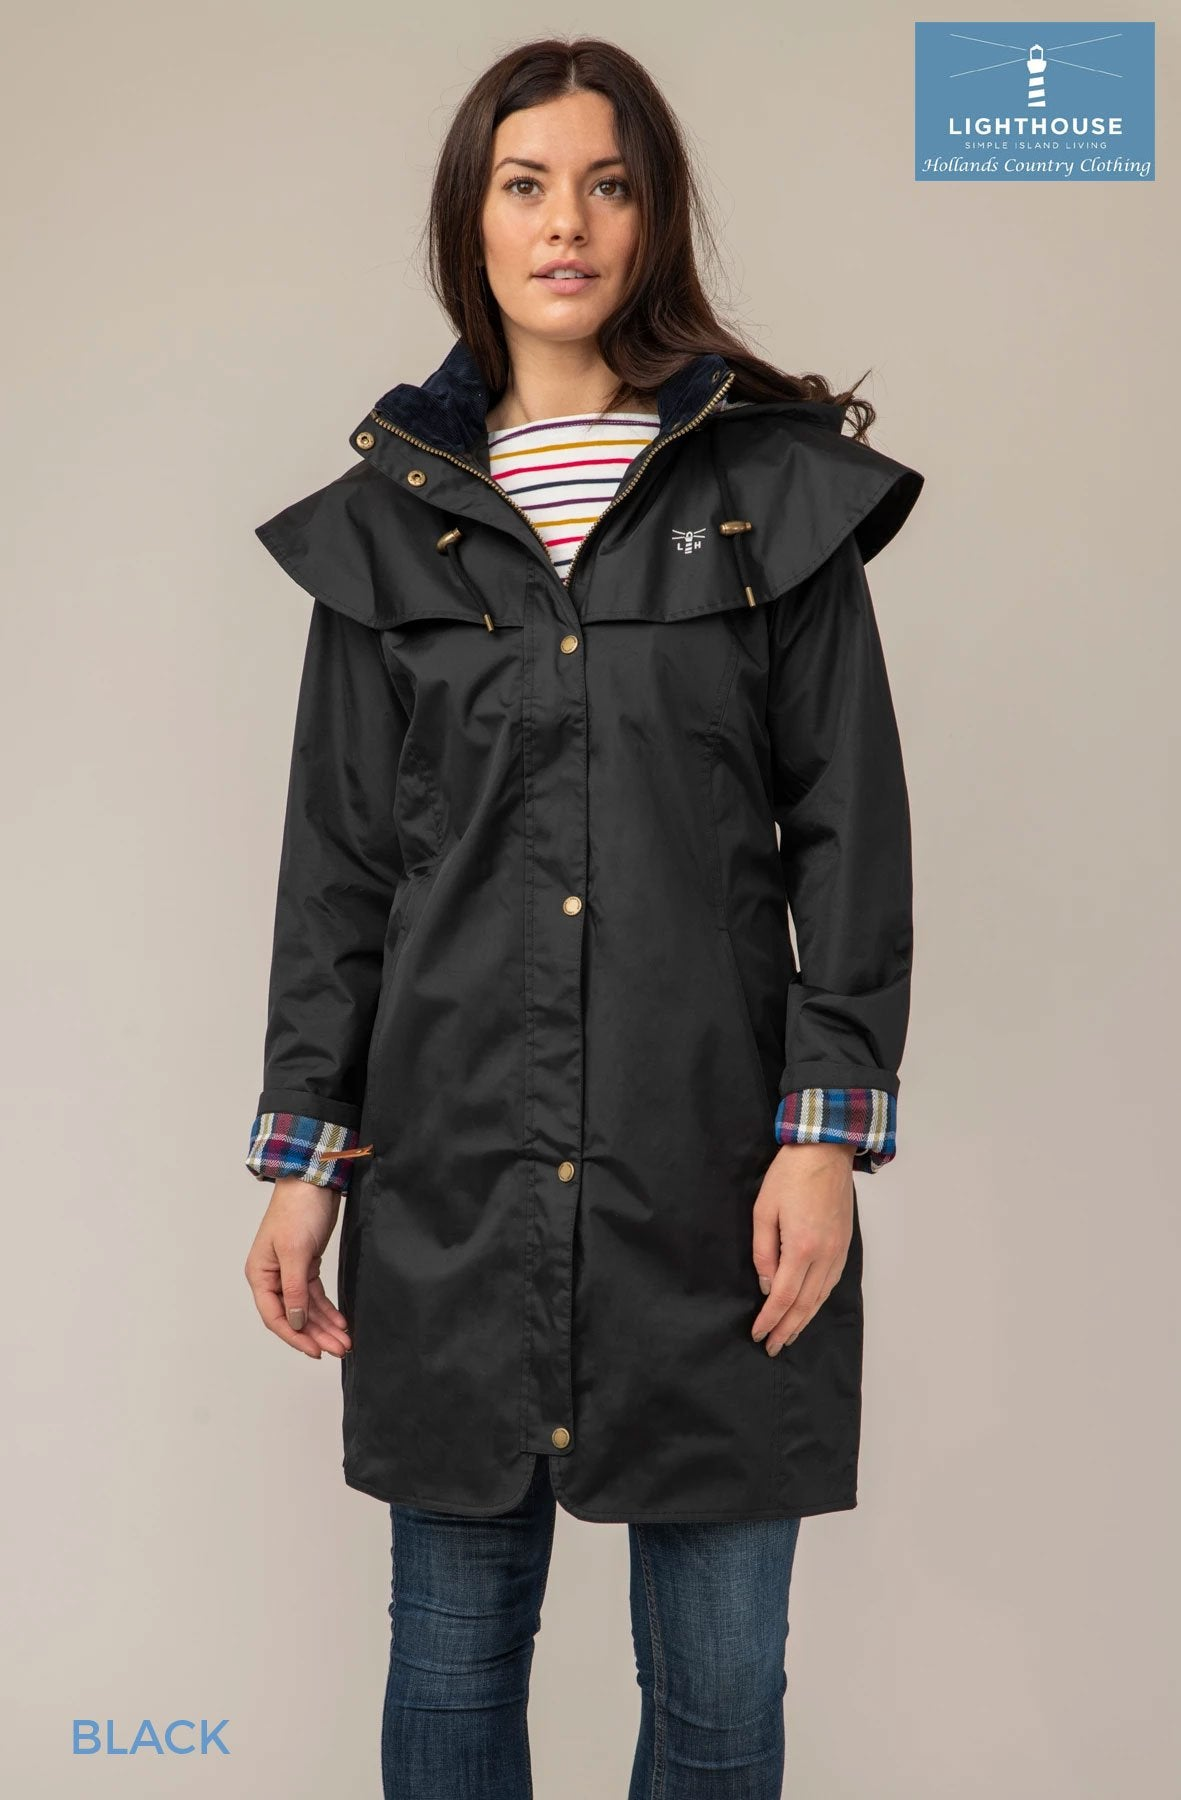 Outrider 3/4 Length Rain Coat by Lighthouse Black